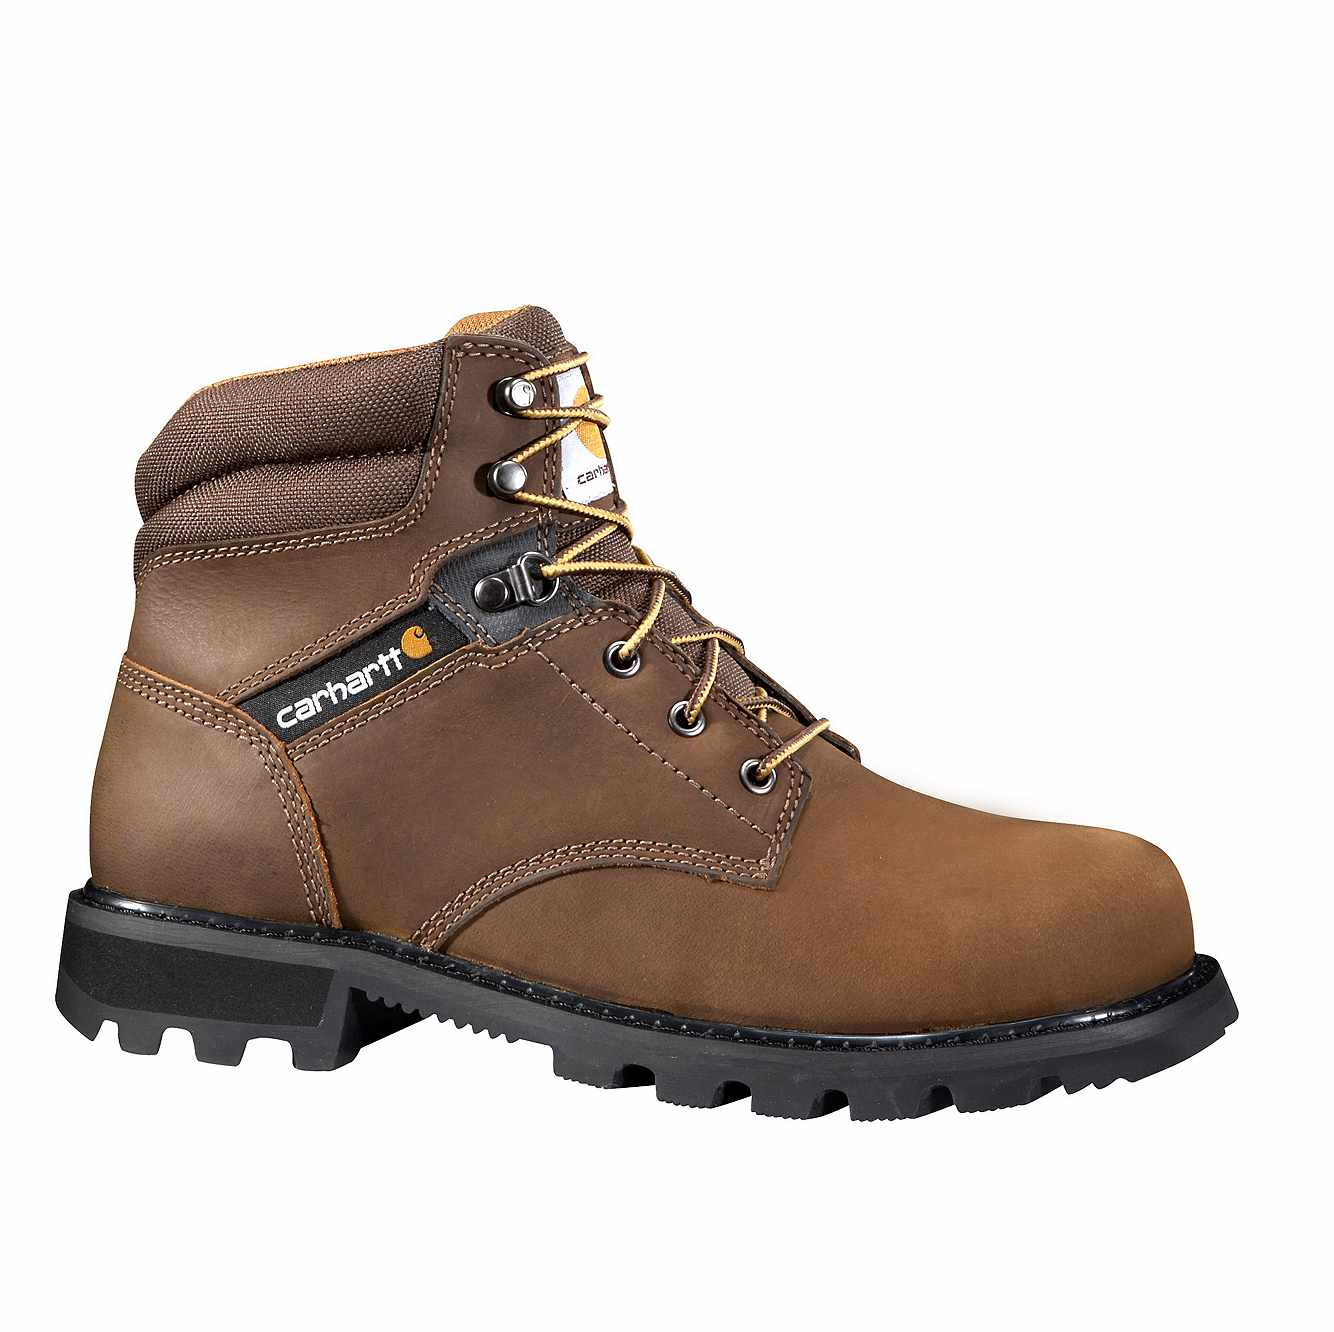 Picture of 6-Inch Steel Toe Work Boot in DK Brown Oil Tanned